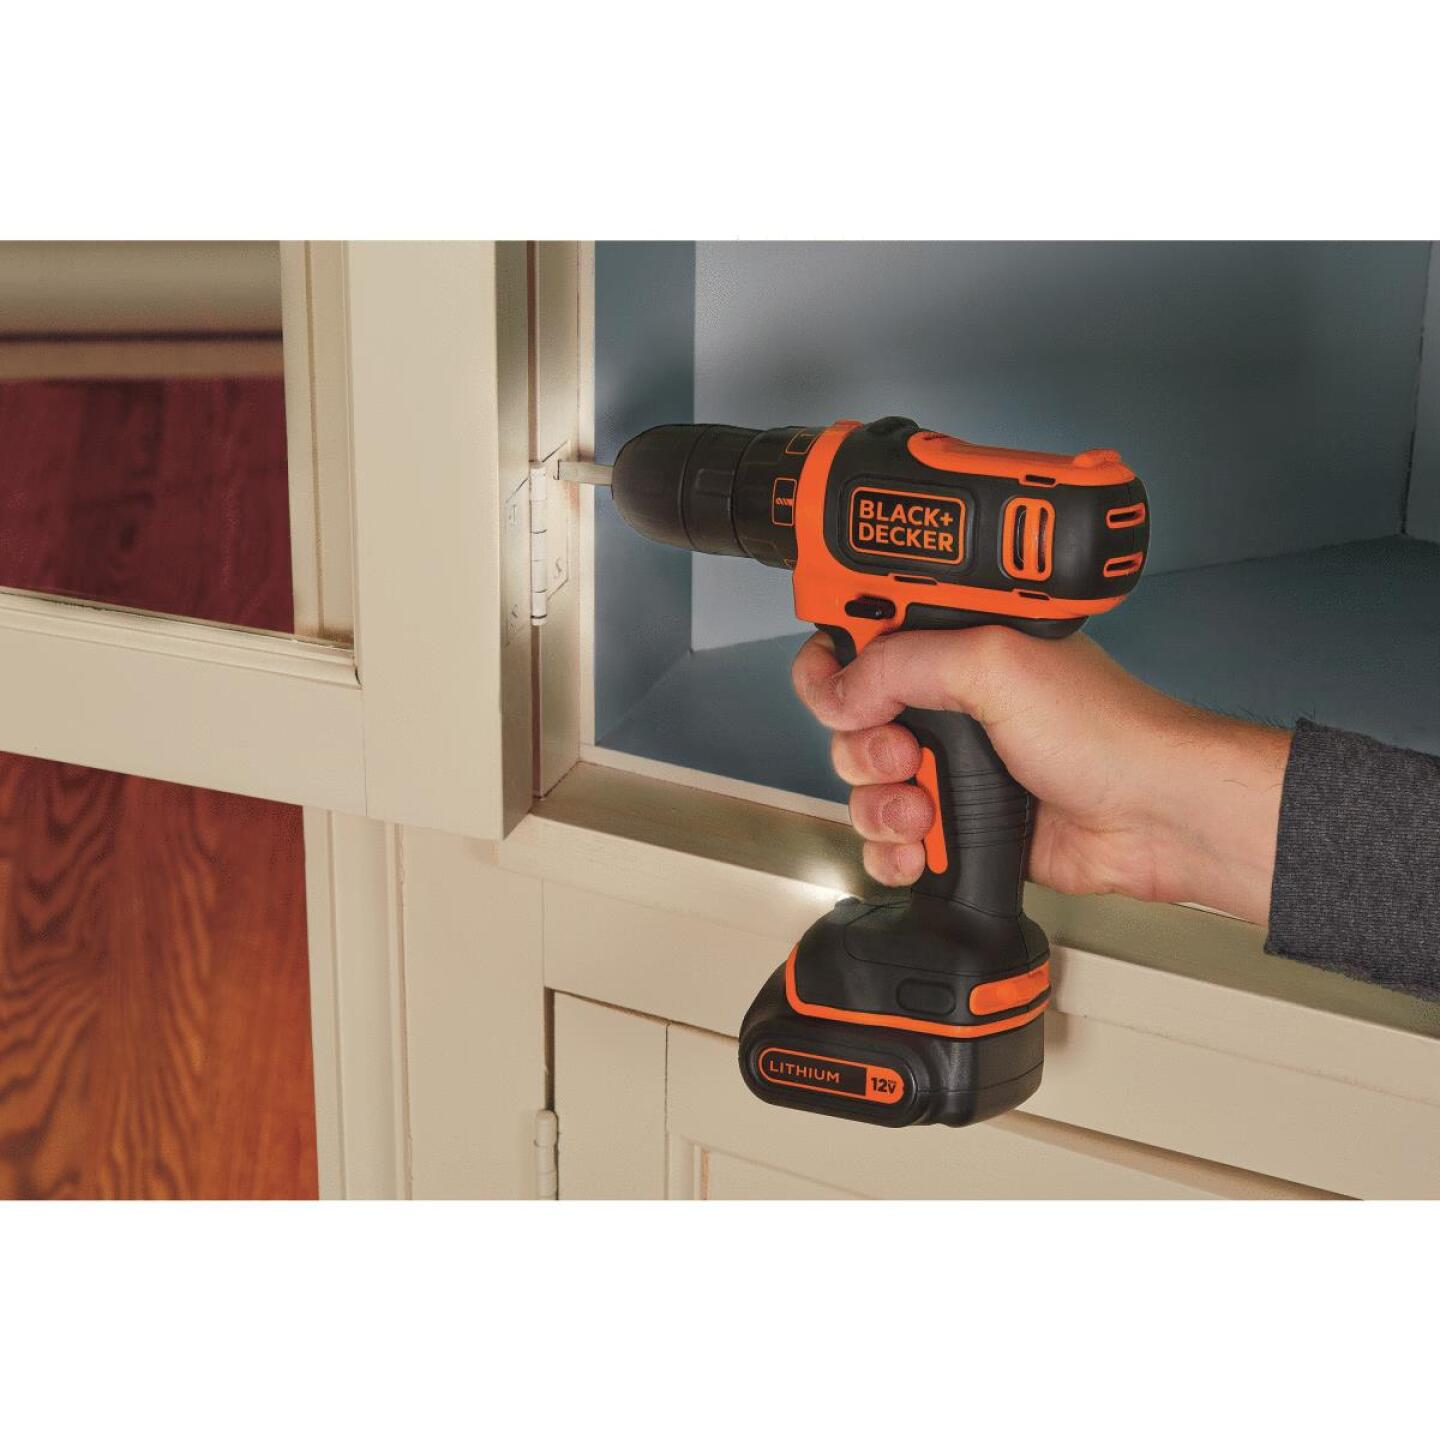 Black & Decker 12 Volt MAX Lithium-Ion 3/8 In. Cordless Drill Kit Image 4